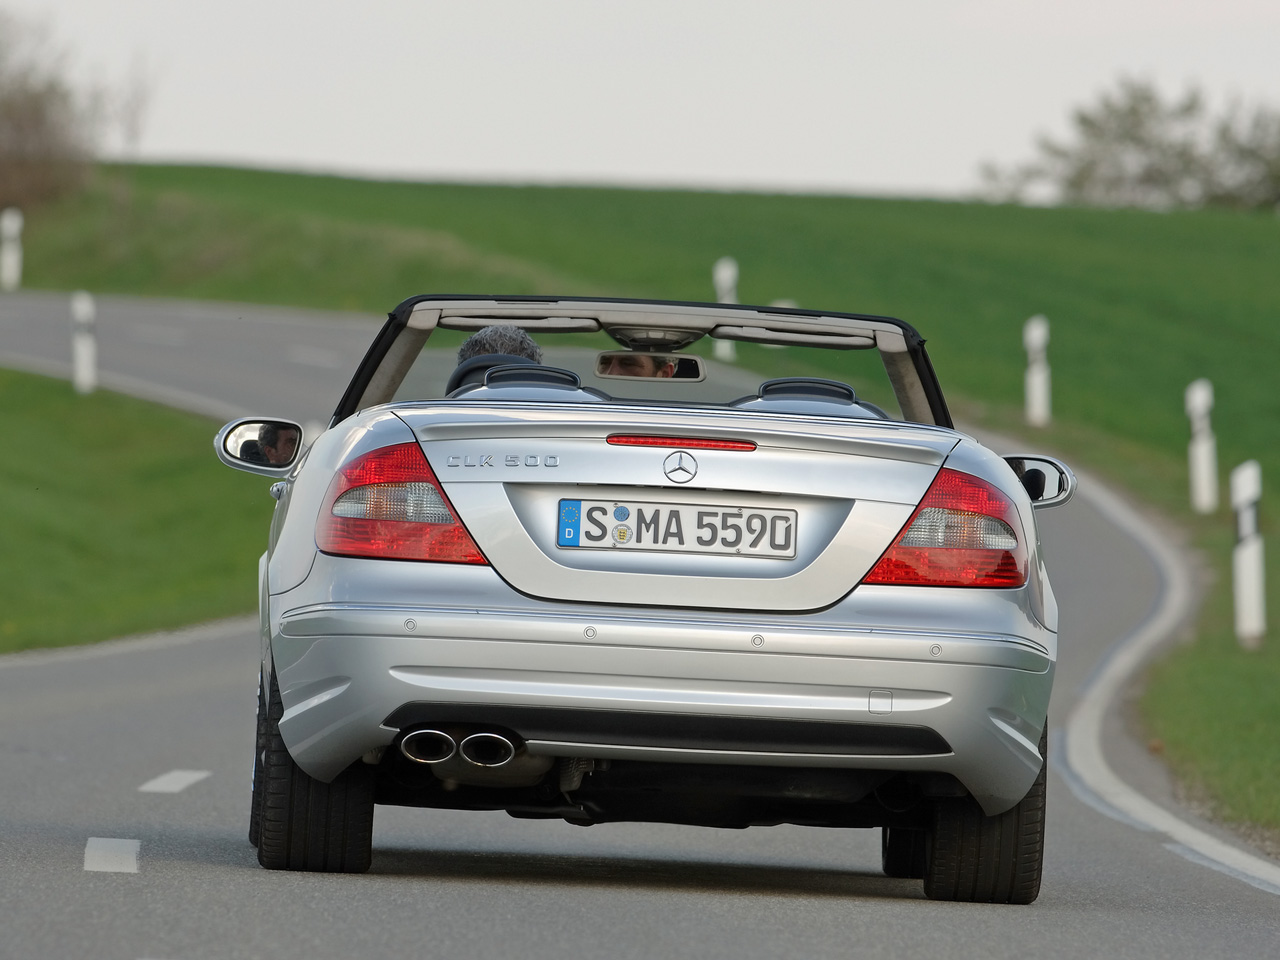 2019 Mercedes Benz CLK Cabriolet photo - 1